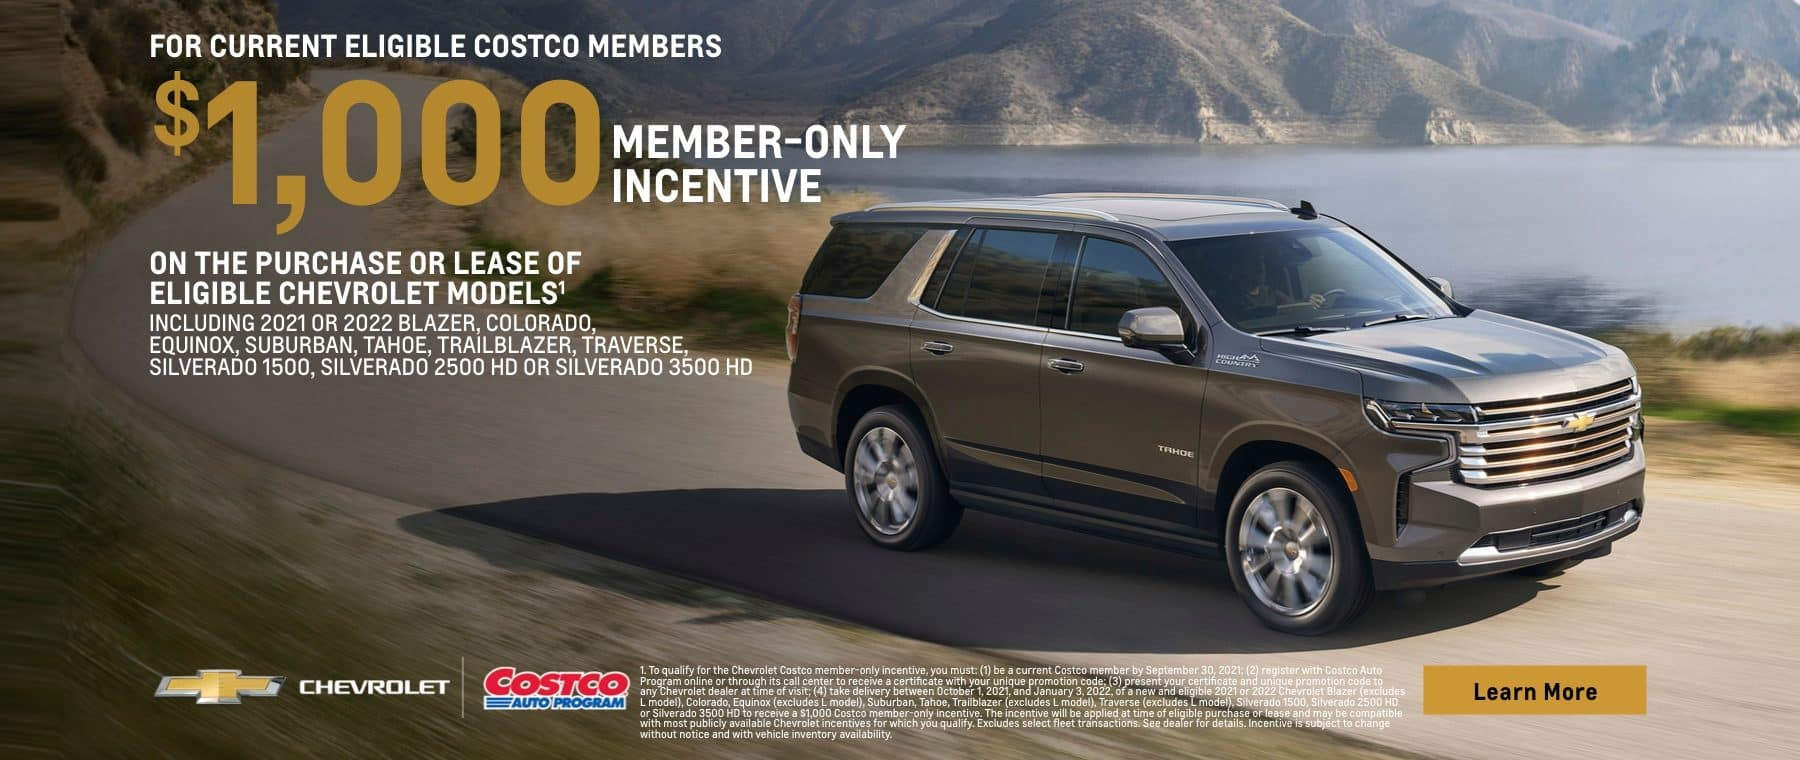 For Current or eligible Costco Members $1,000 member only incentive on the purchase or lease of eligible chevrolet models